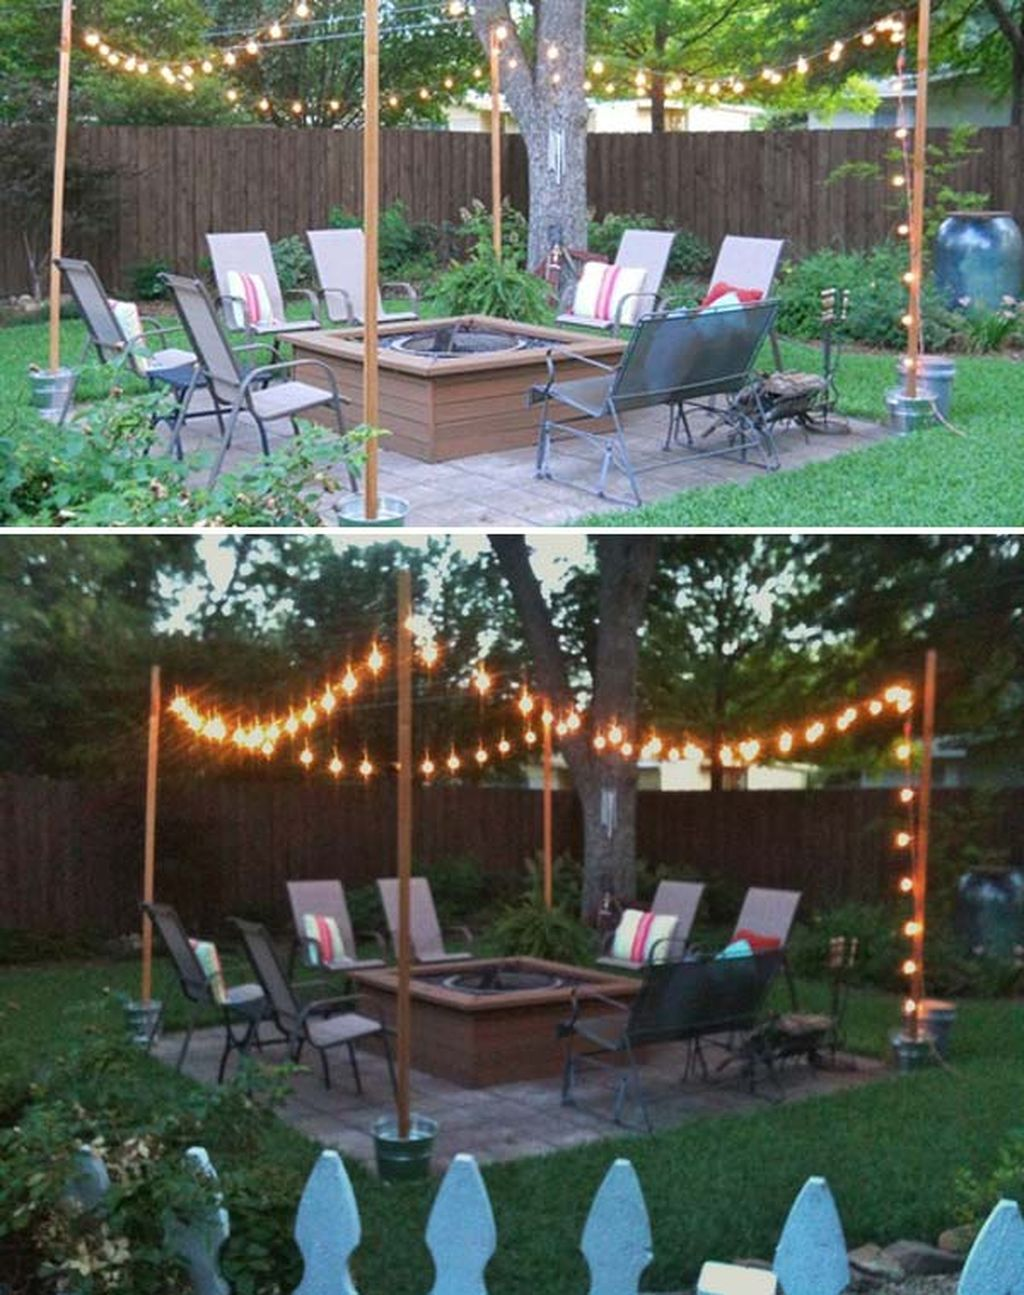 10 Awesome Diy Backyard Fire Pit Ideas Outdoor Living Outdoor